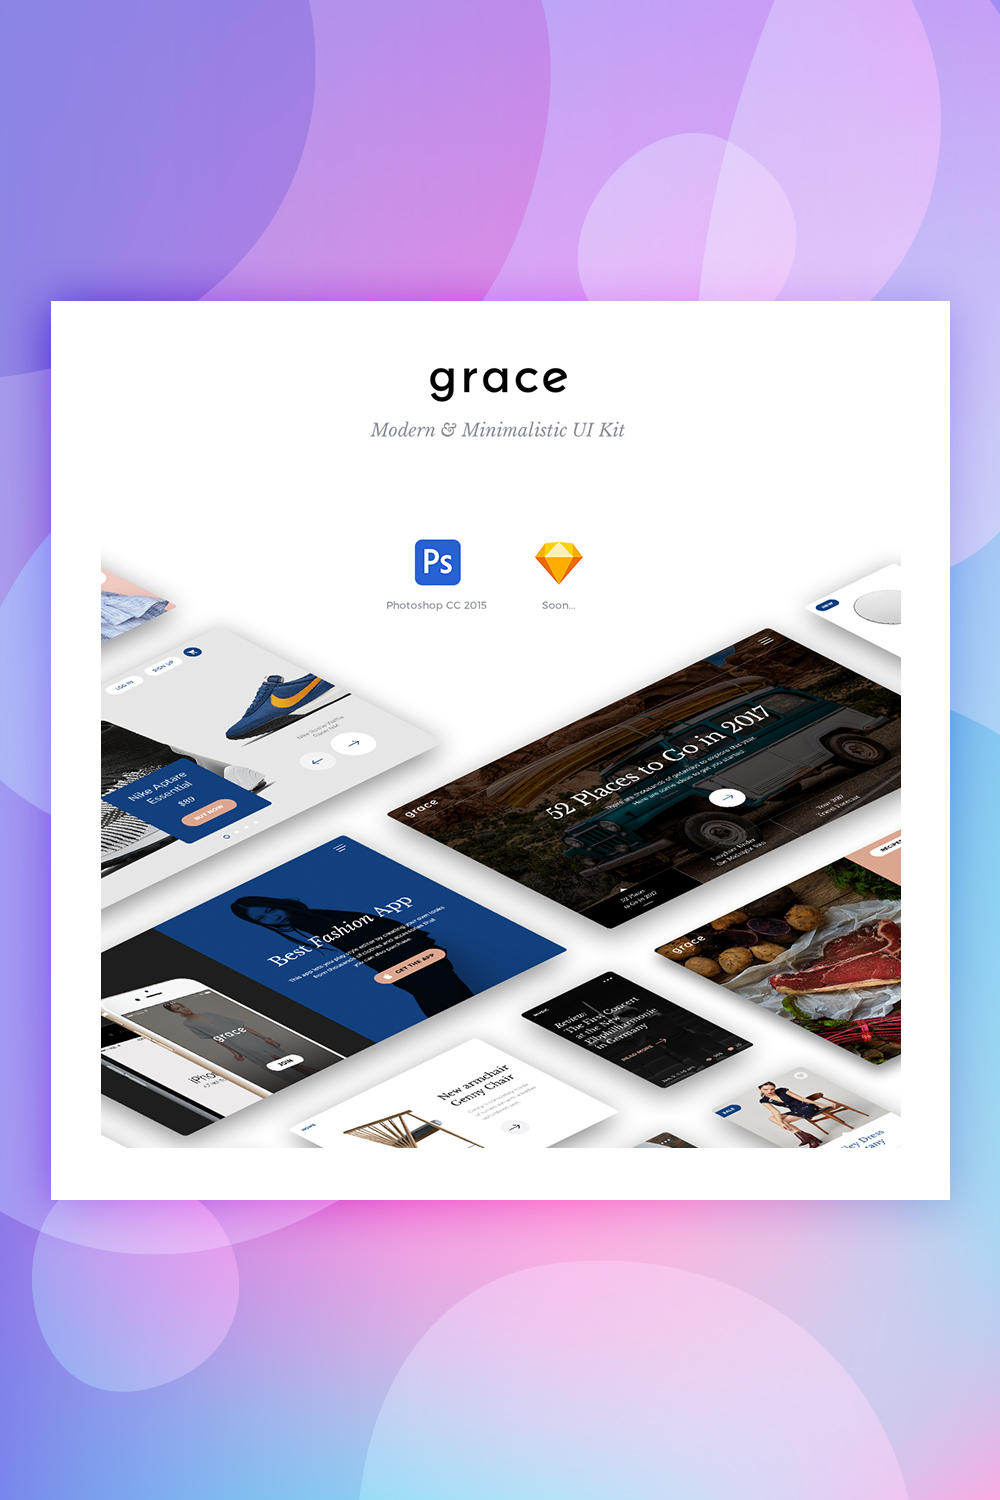 Grace UI Kit UI Elements